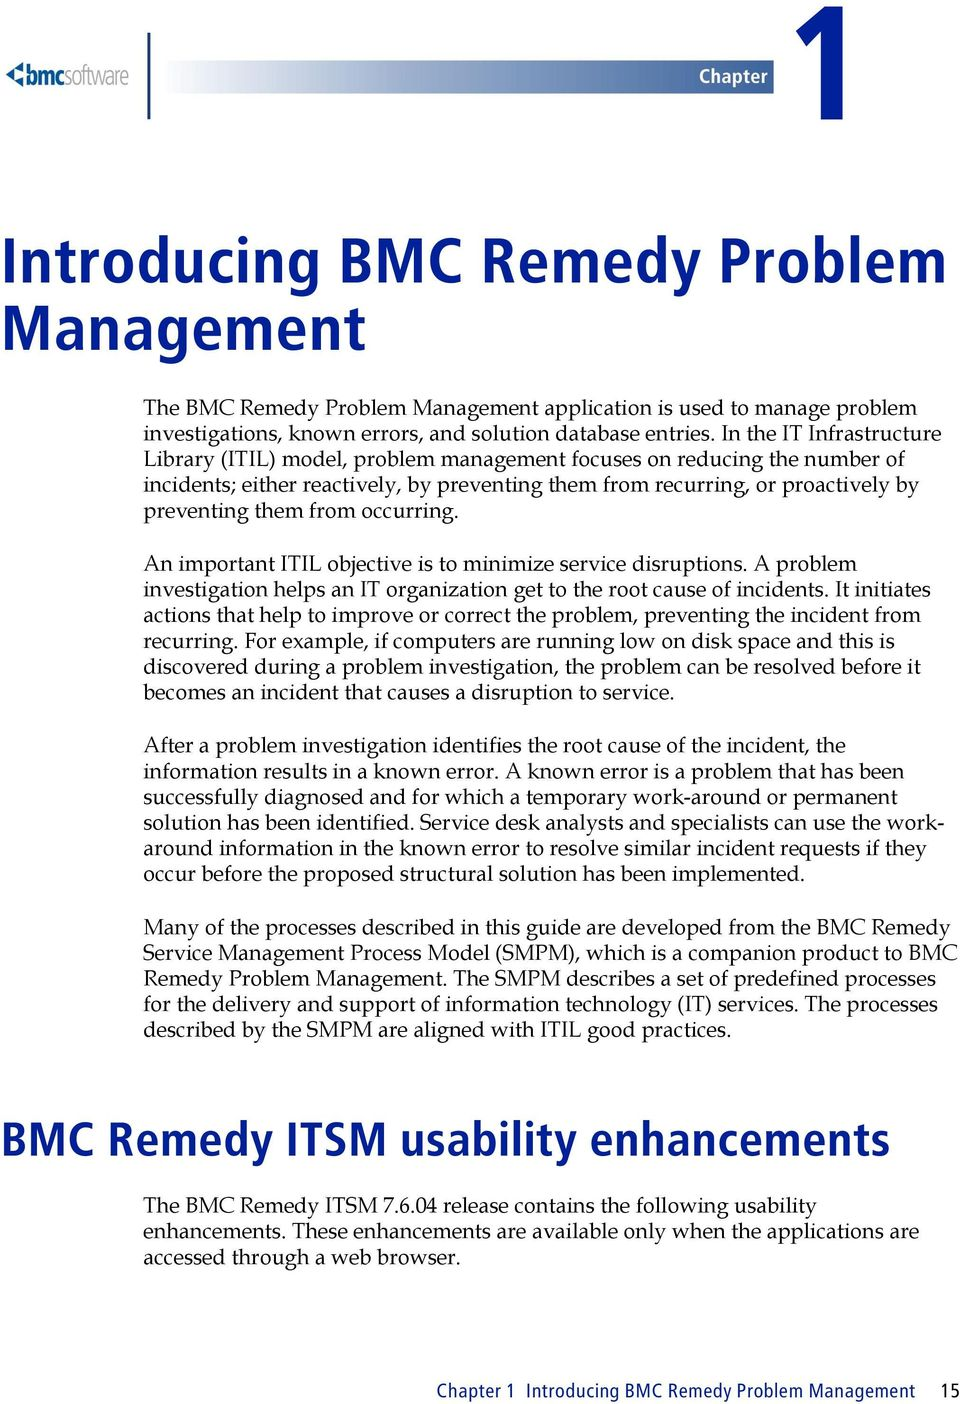 bmc remedy service desk problem management user guide supporting rh docplayer net User Manual User Manual Guide